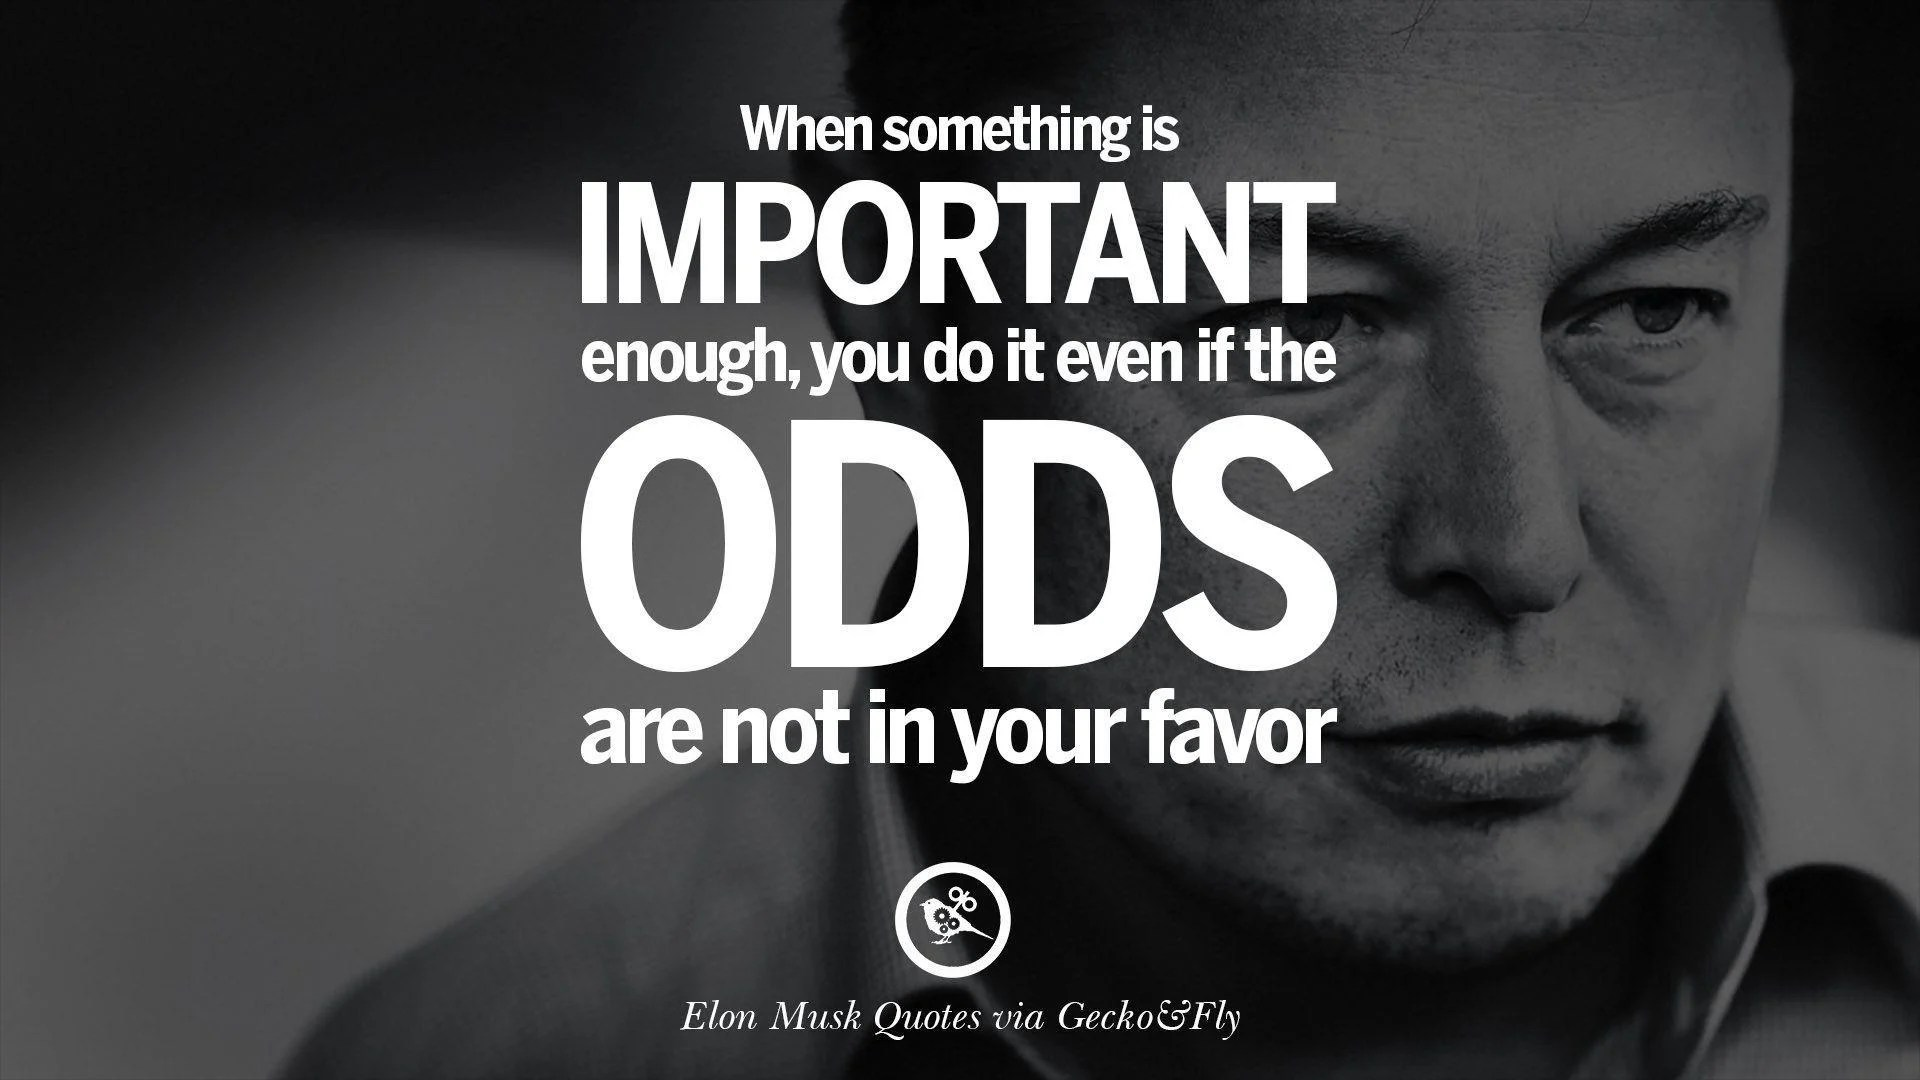 Motivational Quotes Wallpapers Hd 1080p For Pc Elon Musk Wallpapers Wallpaper Cave